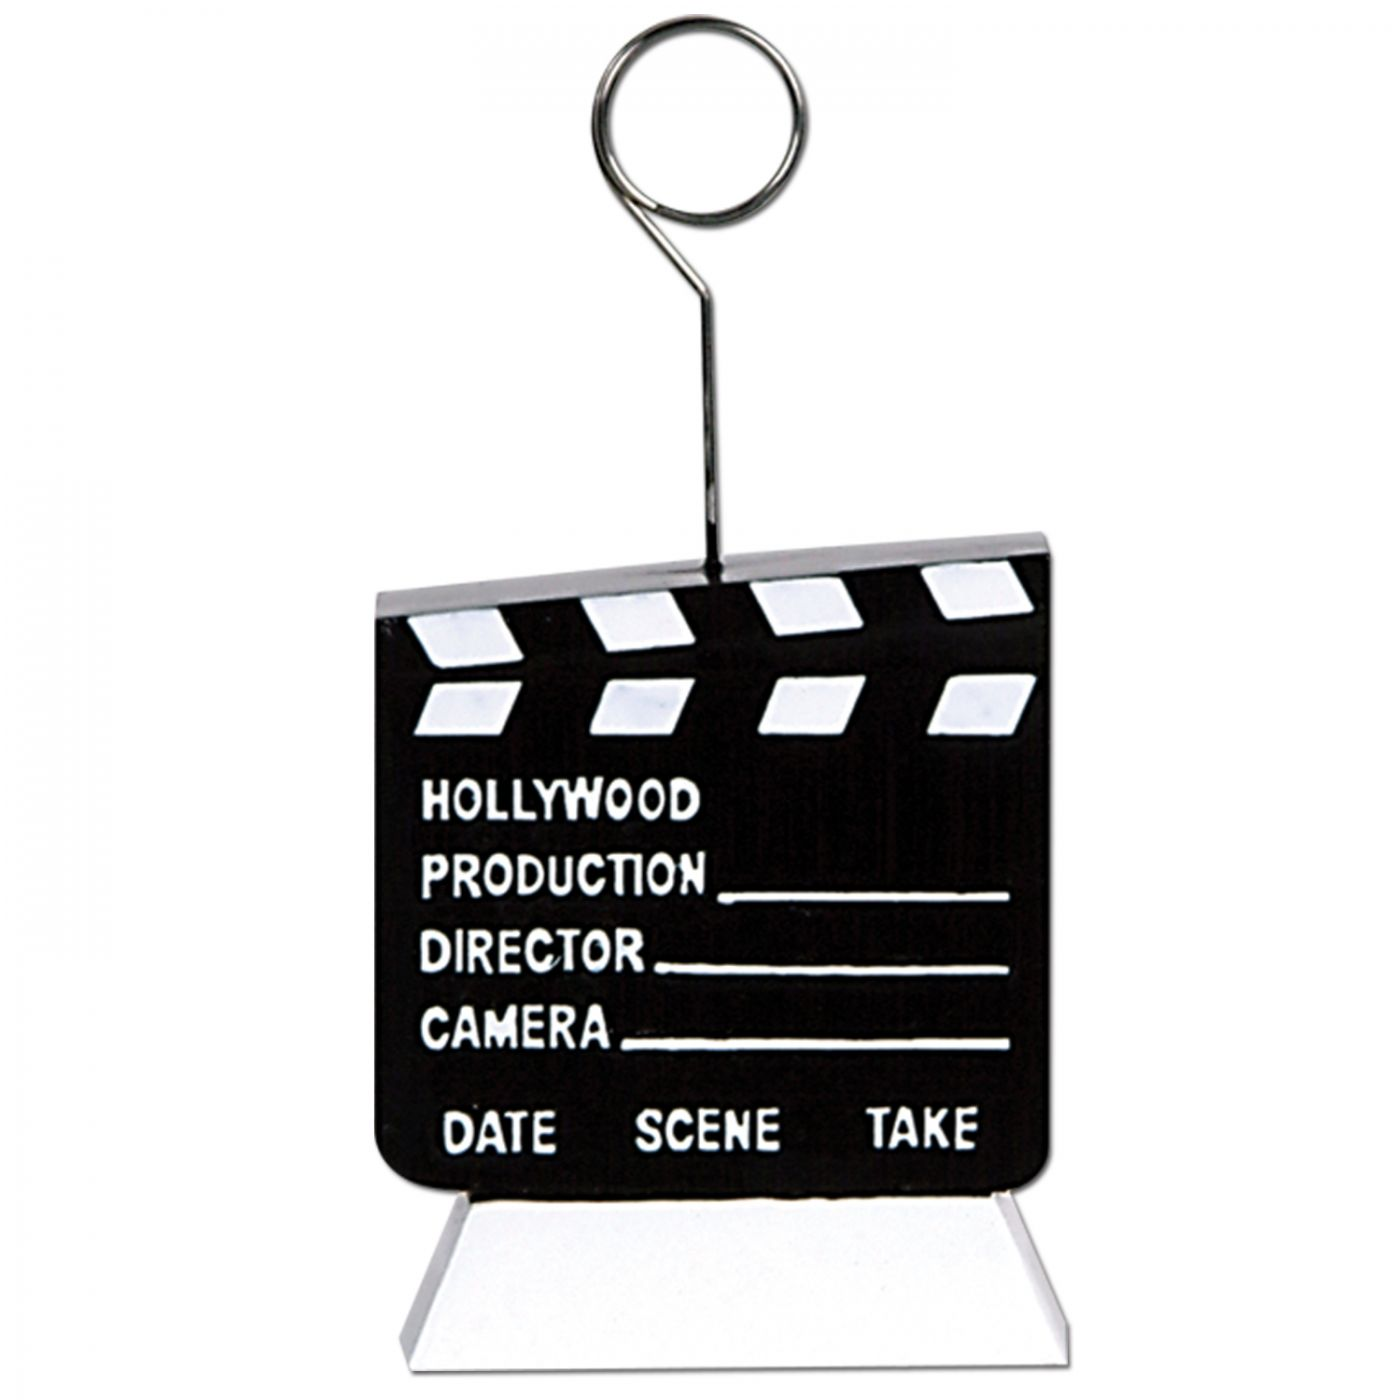 Clapboard Photo/Balloon Holder (6) image